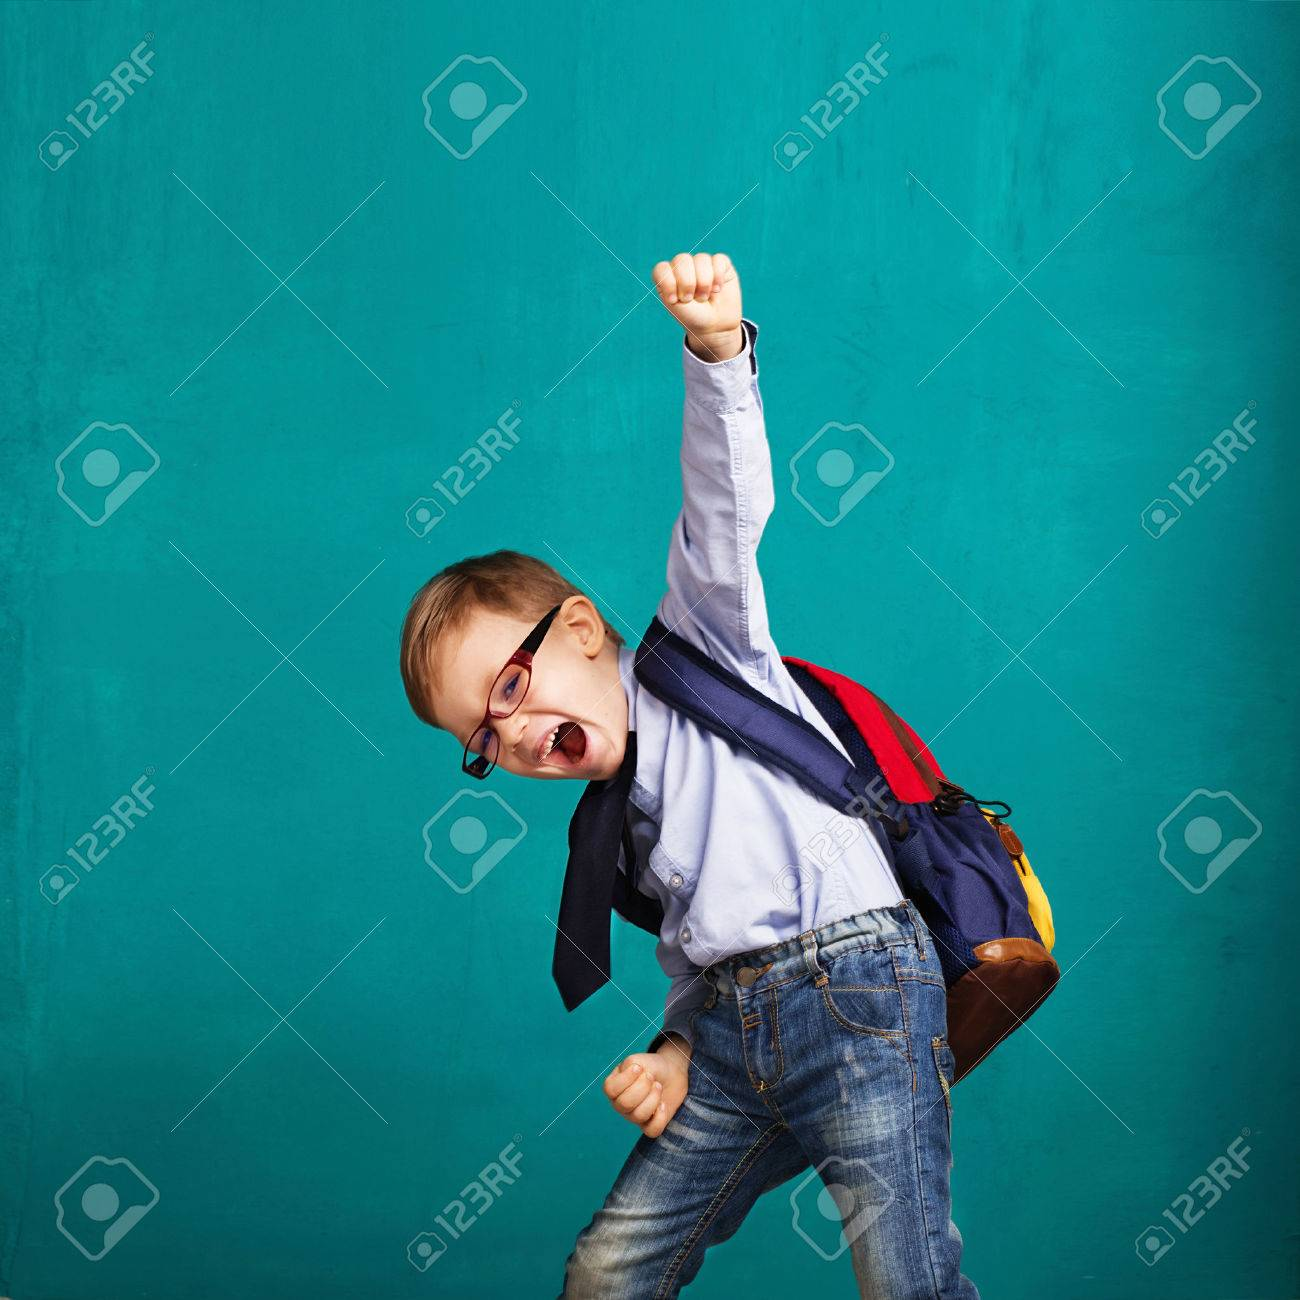 Cheerful smiling little boy with big backpack jumping and having fun against blue wall. Looking at camera. School concept. Back to School - 54370615